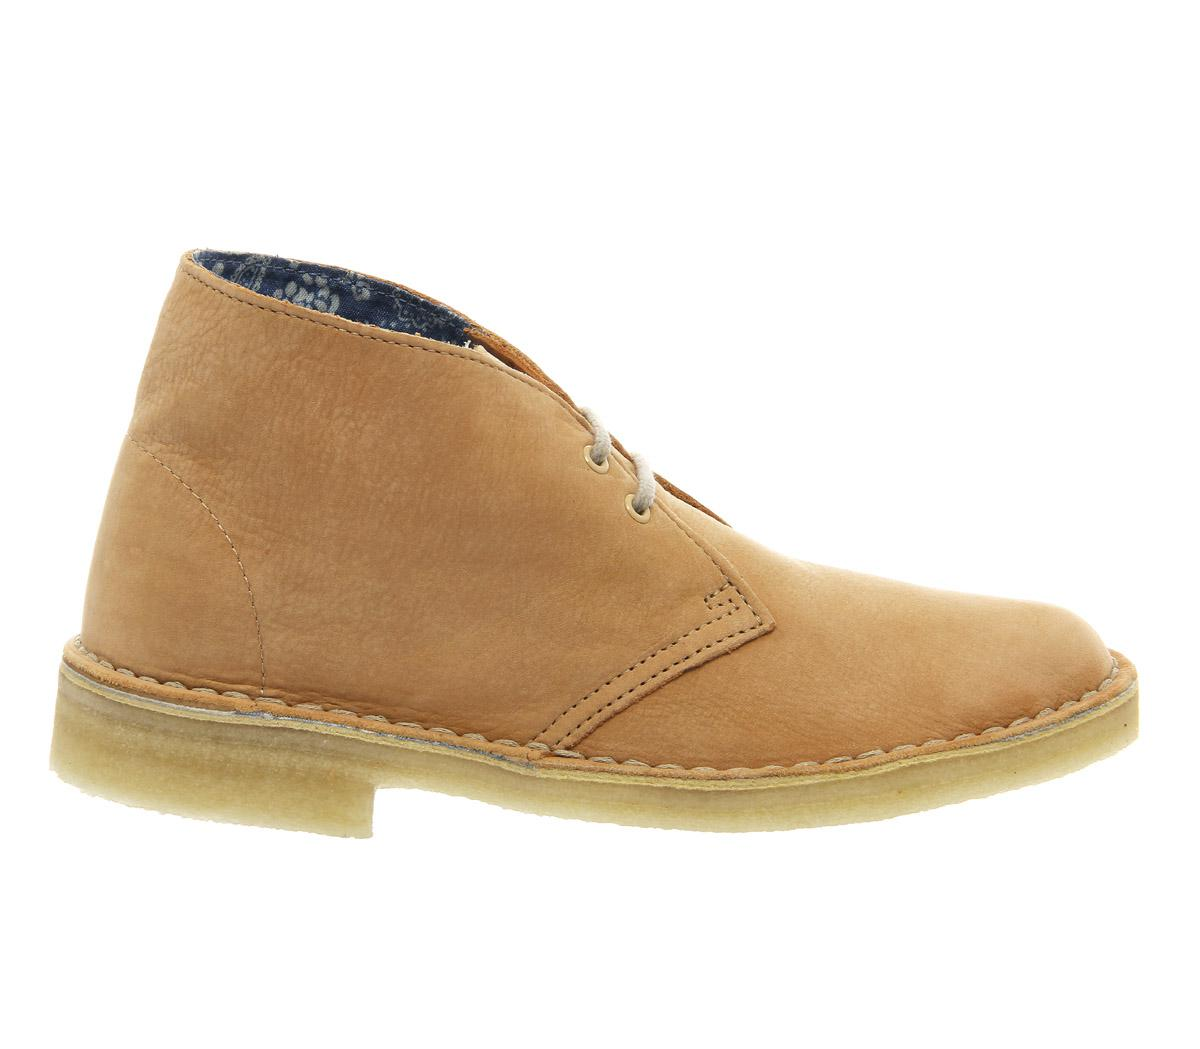 Clarks Desert Boots (w) in Natural